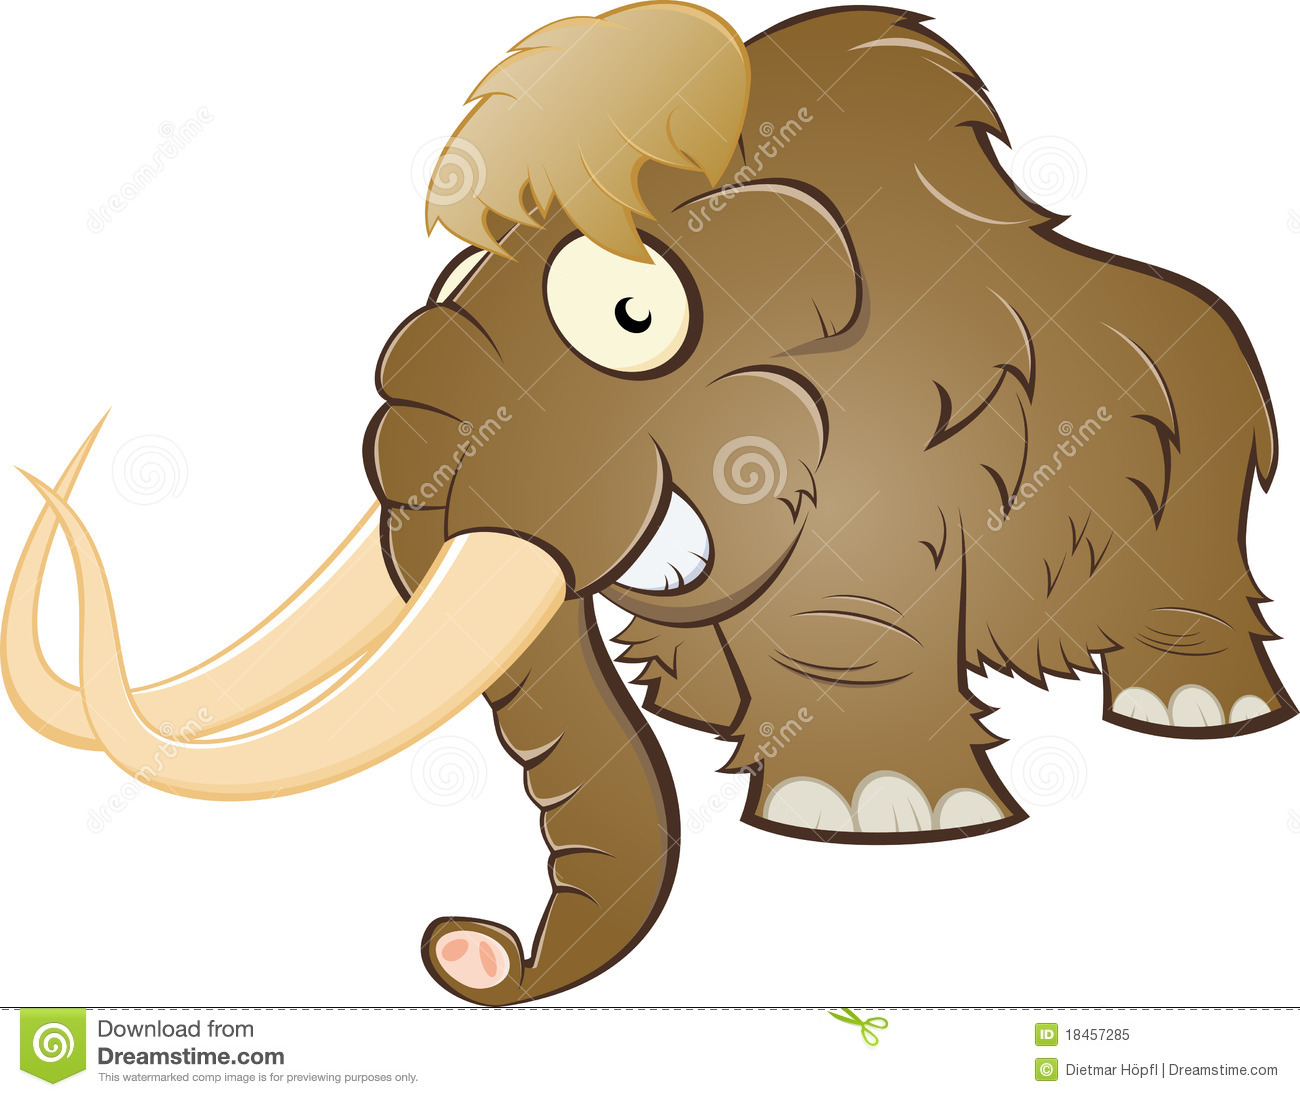 Cartoon illustration of brown mammoth; isolated on white background.